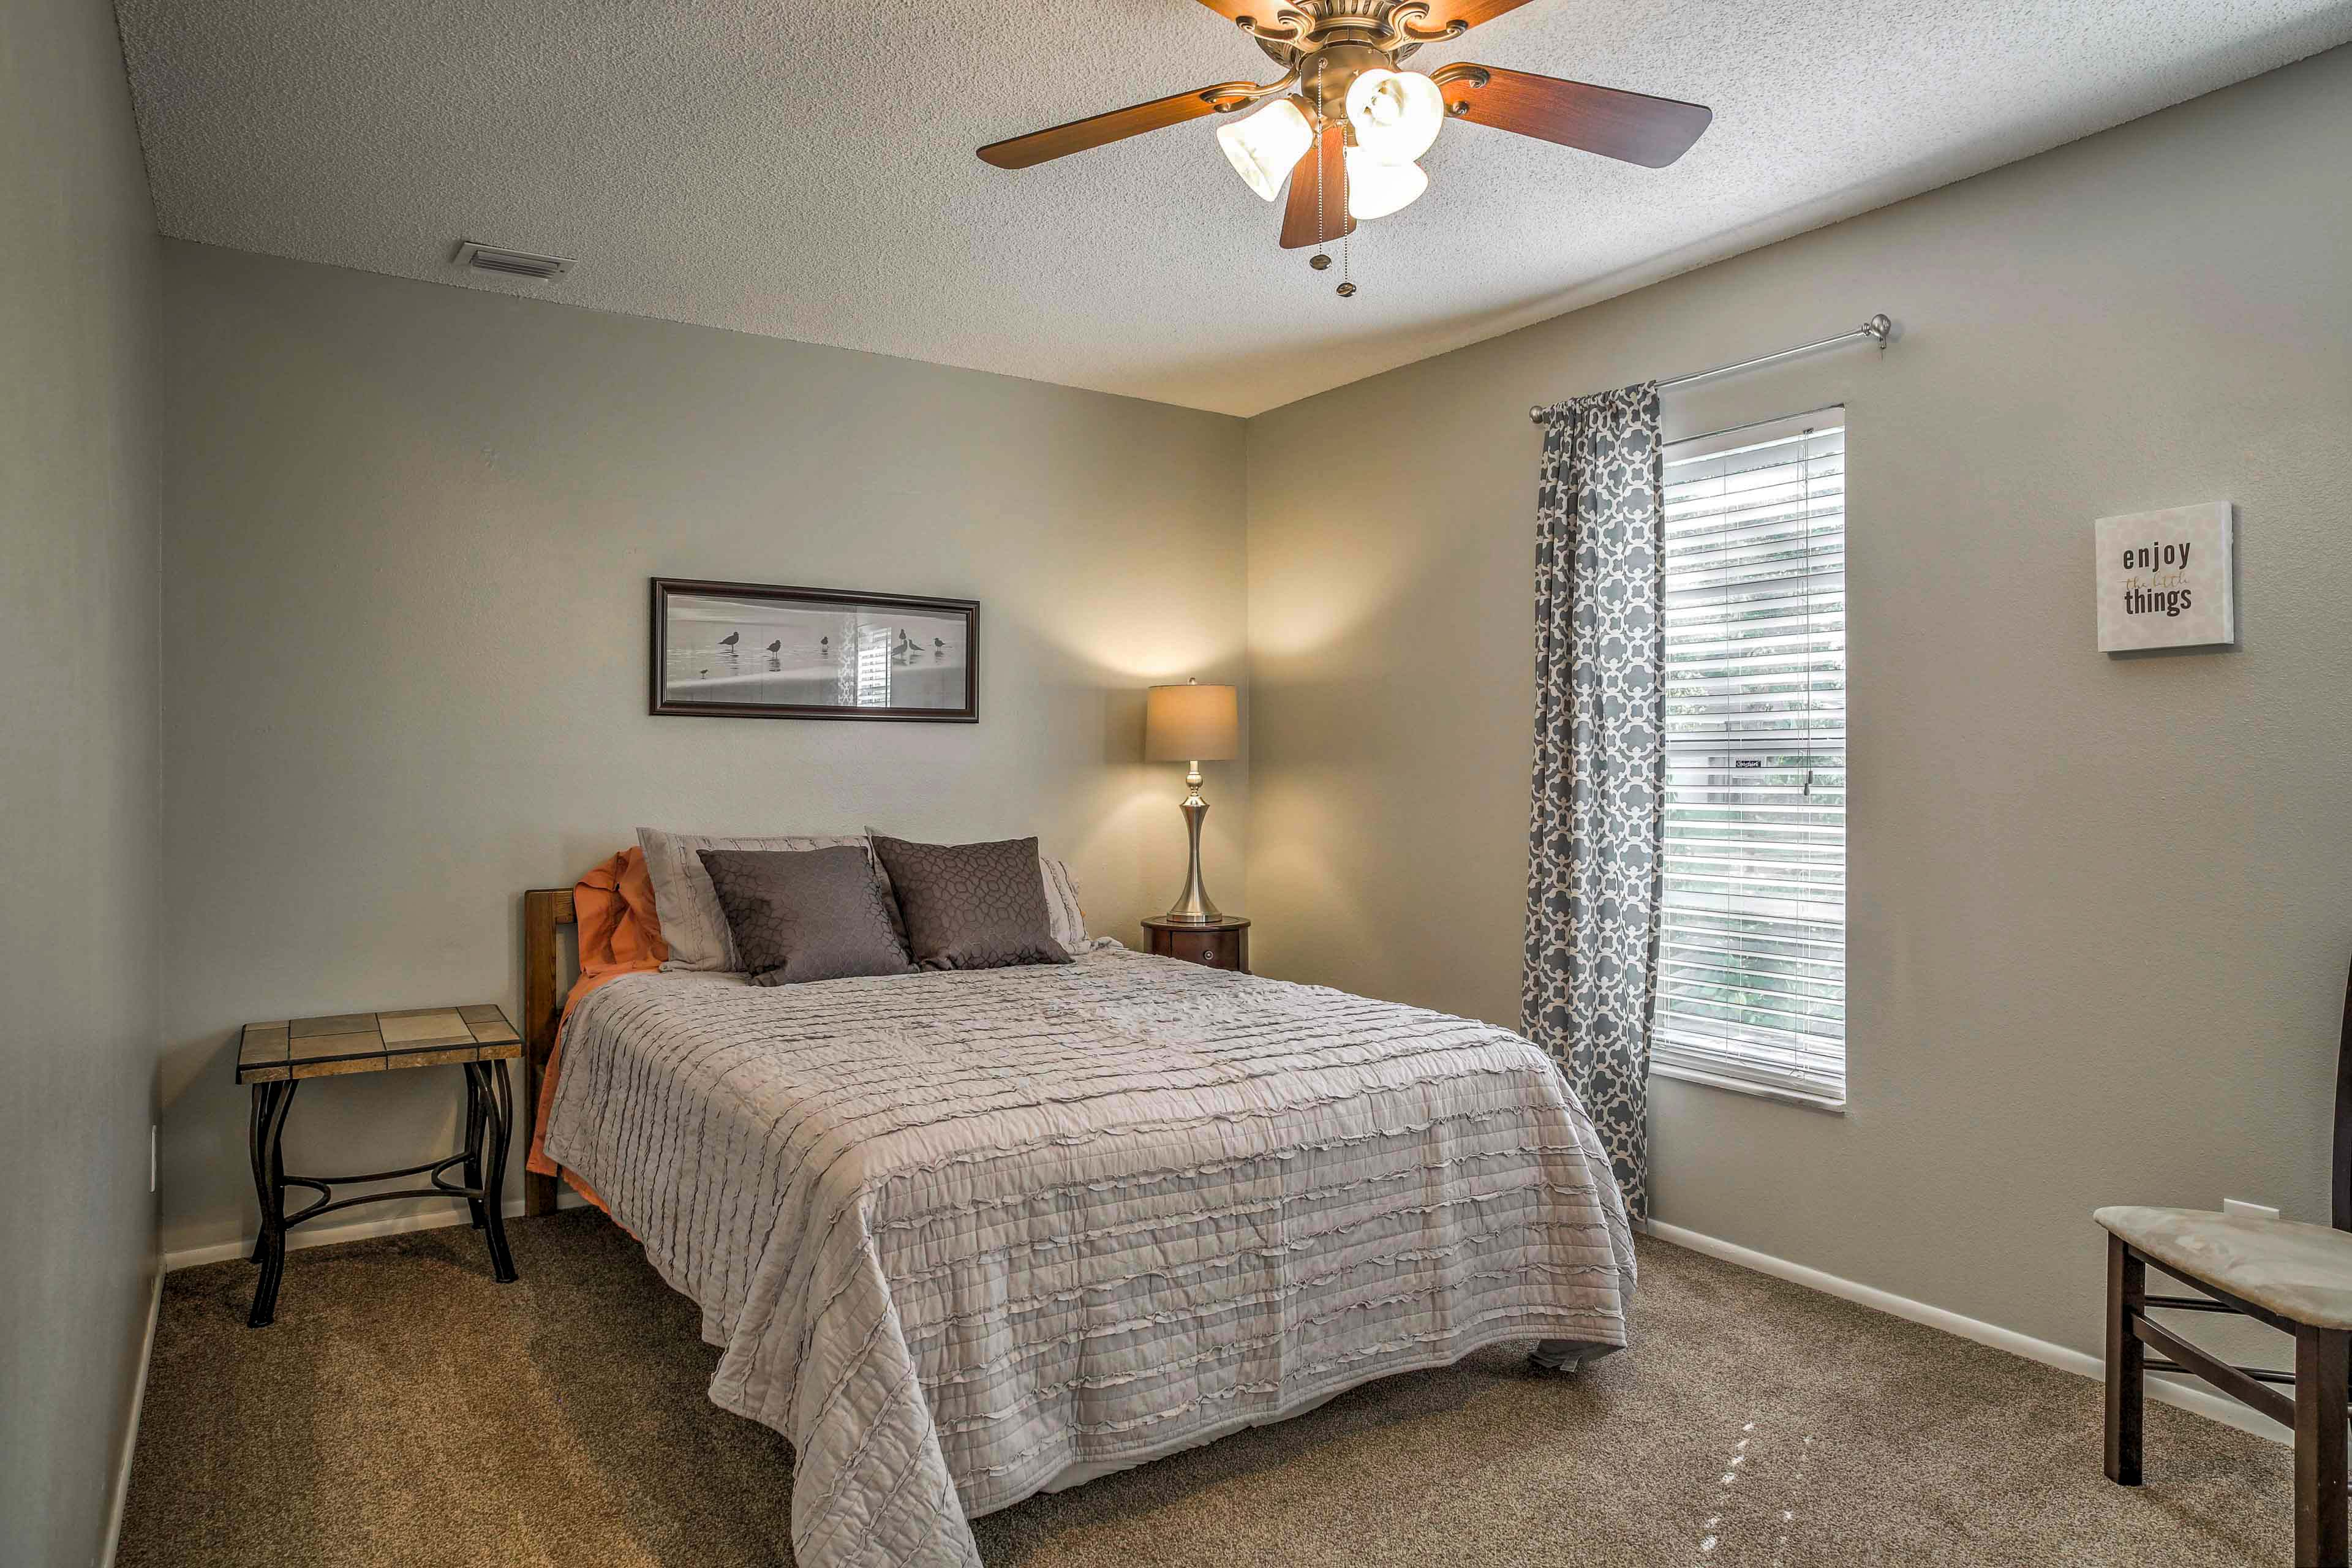 You'll feel right at home in the second bedroom.